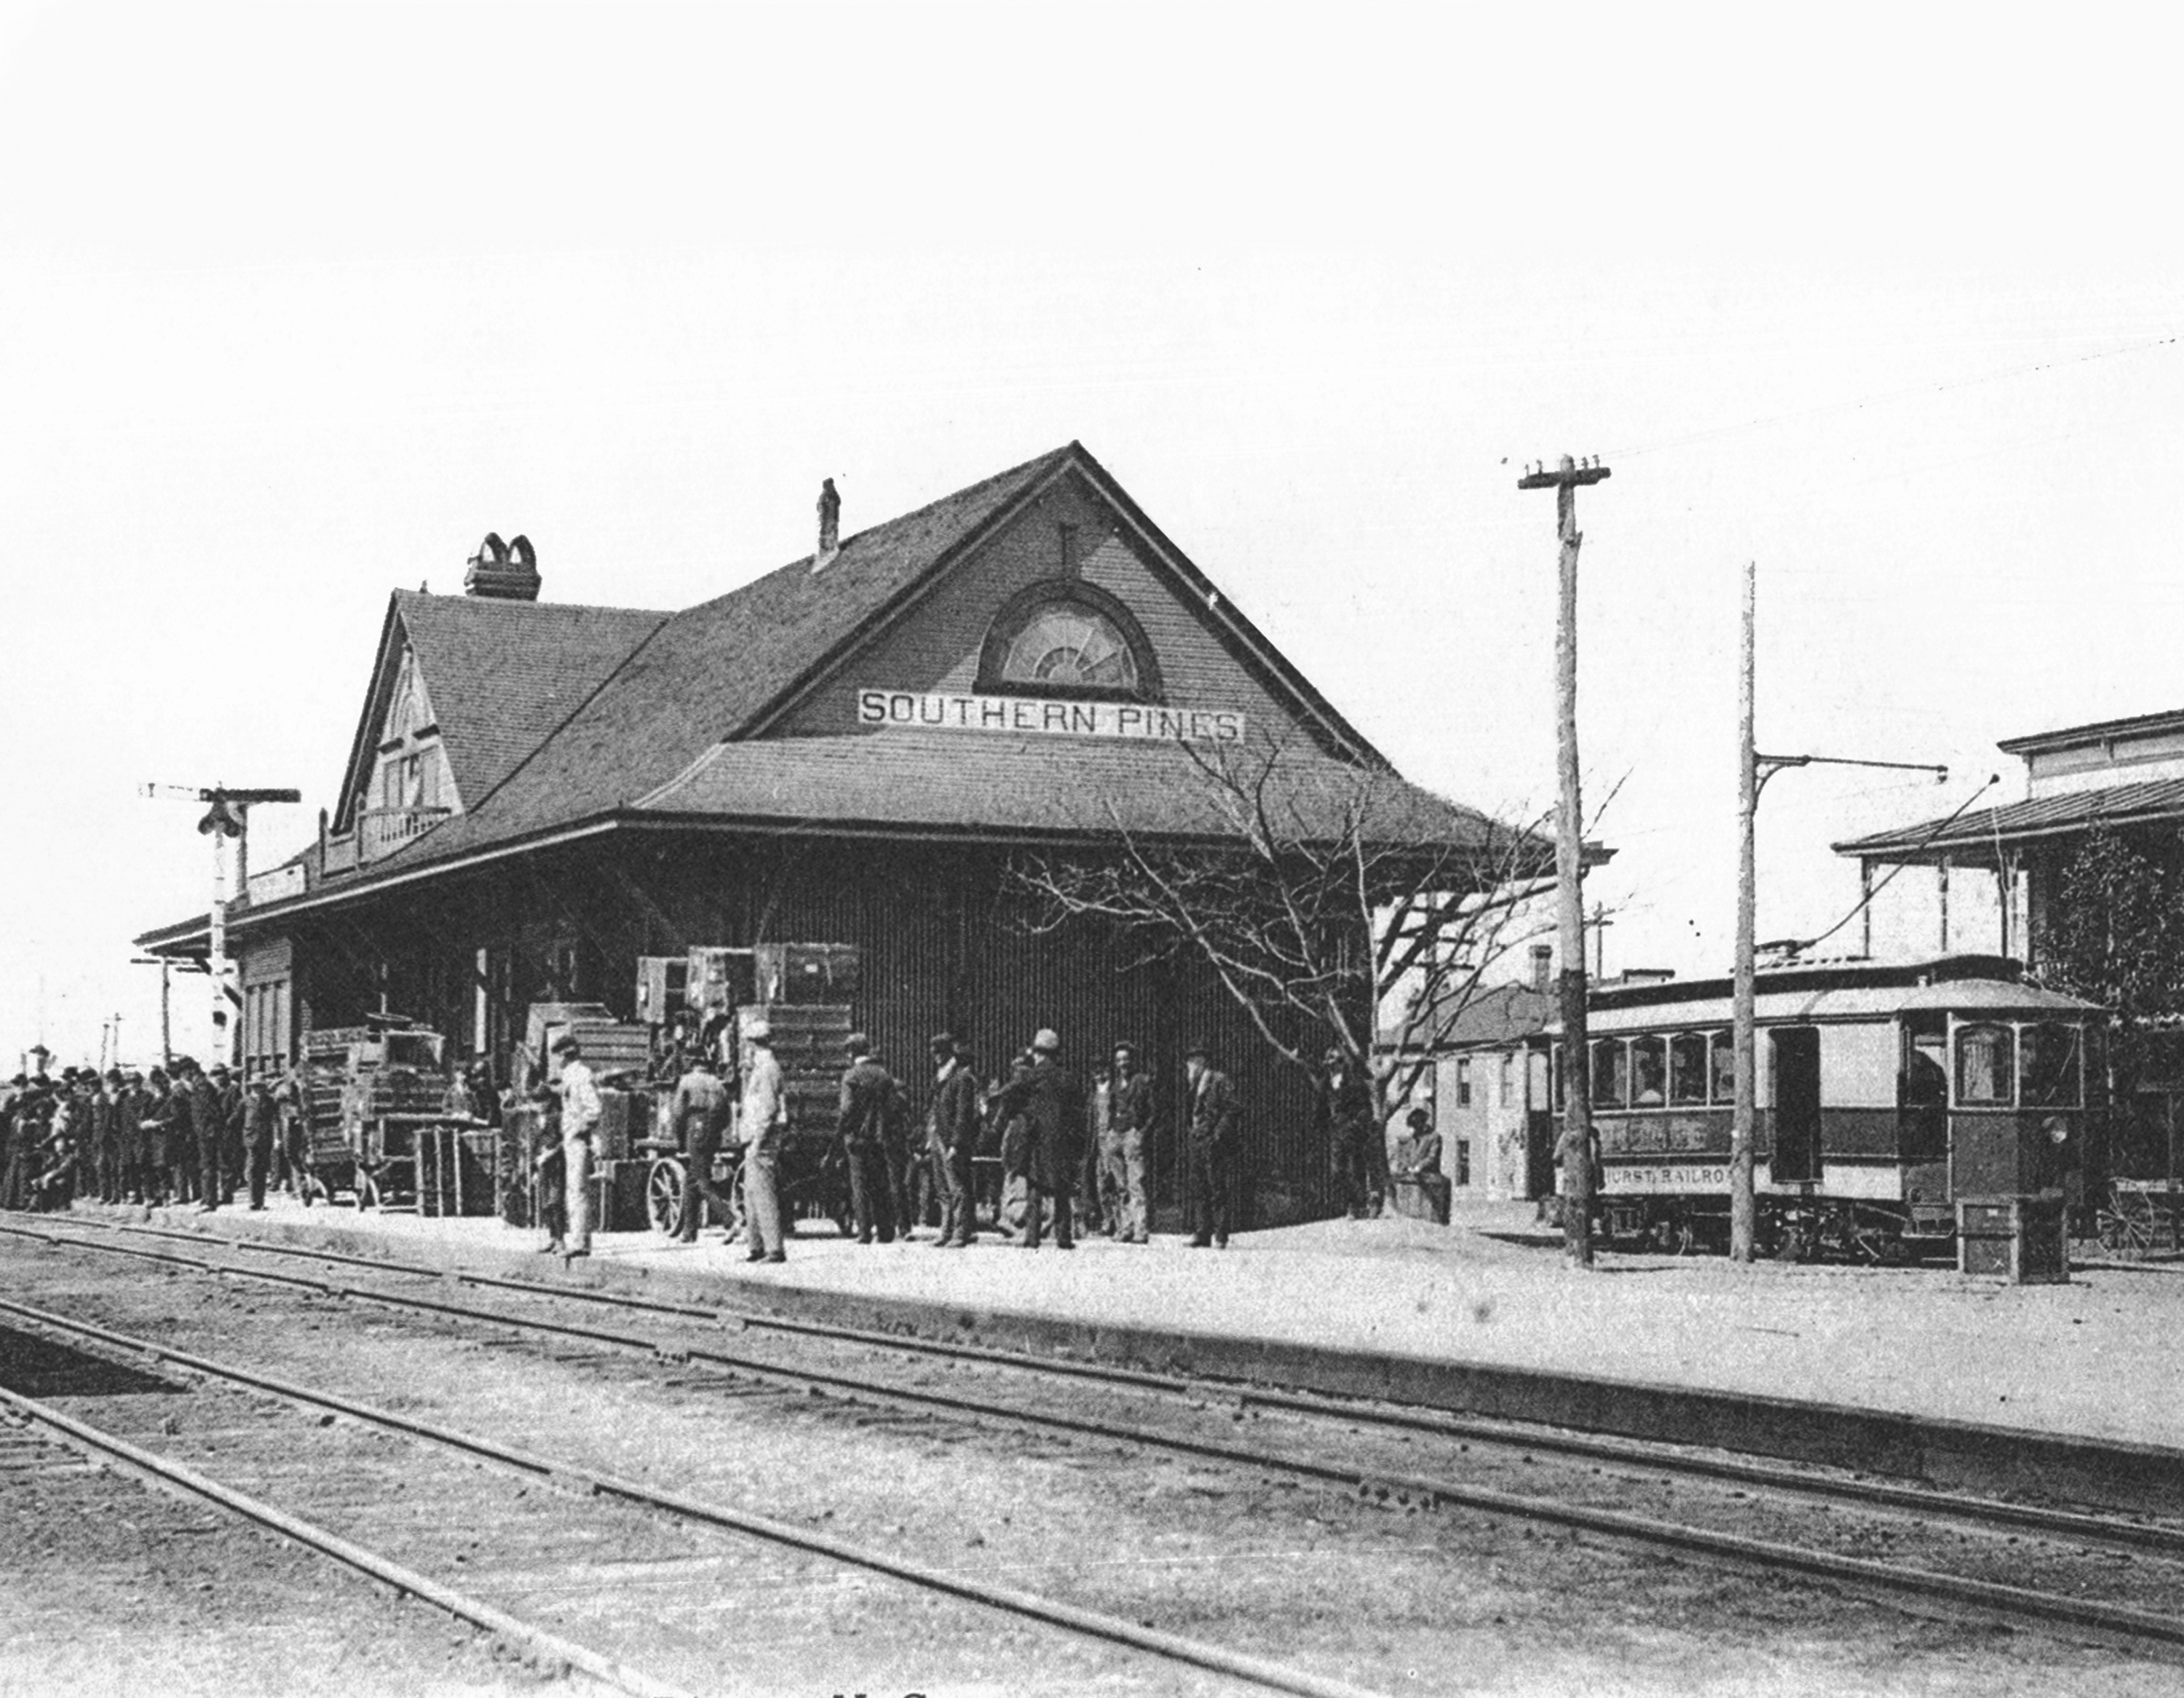 A permanent railway depot was built in 1898 that exists to the present. The Southern Pines-Pinehurst trolley also seen here operated from 1896-1905.